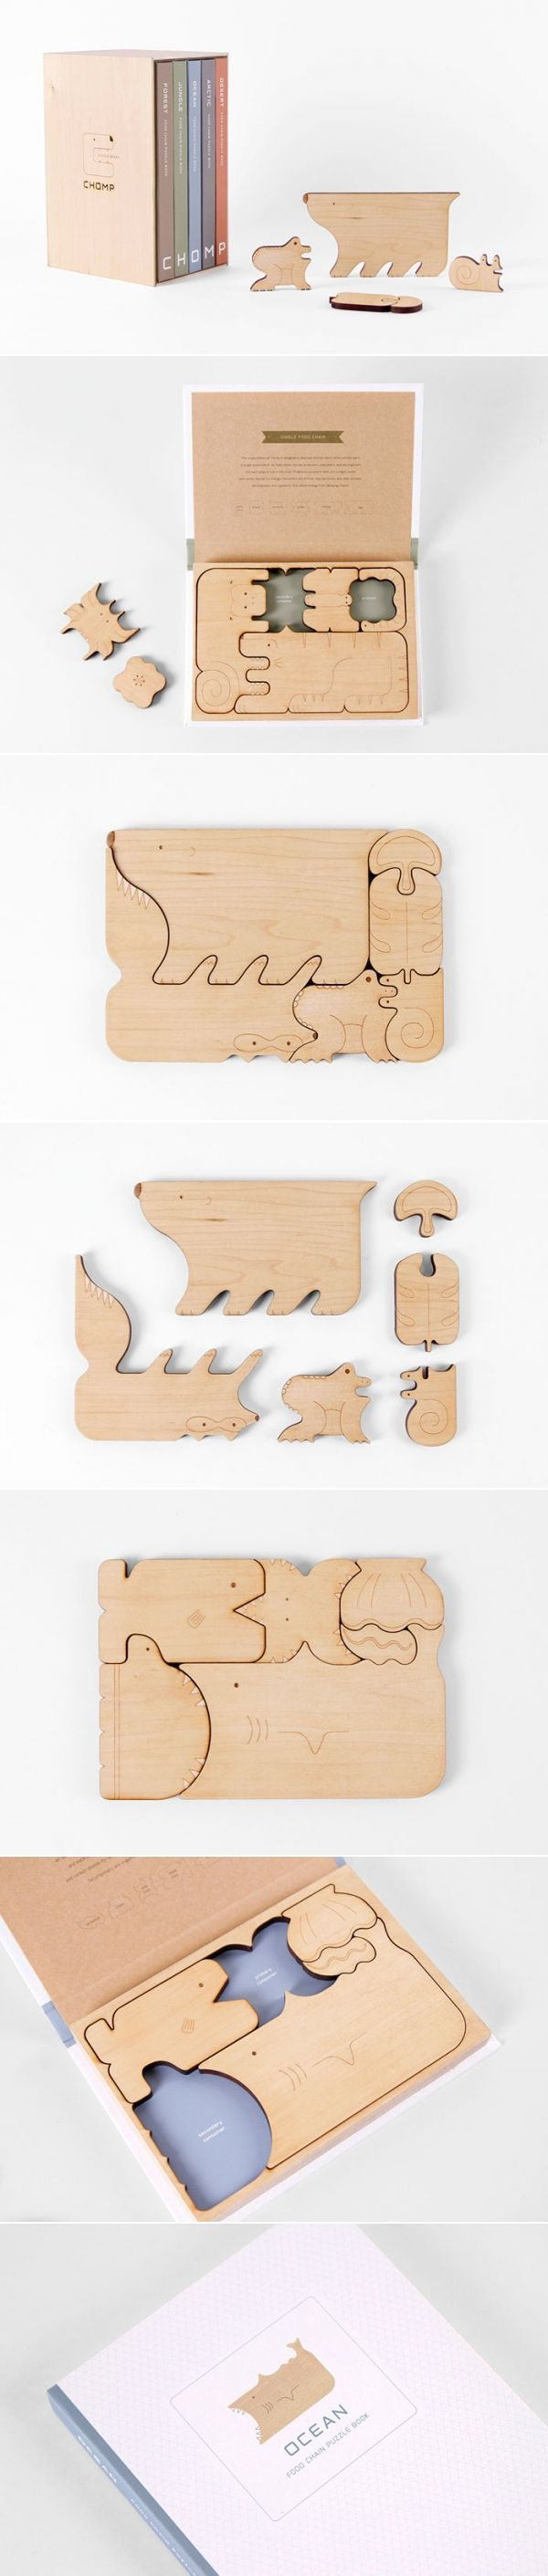 Beautifully Designed CHOMP Food Chain Puzzle Books | Mirim Seo and Kelly Holohan